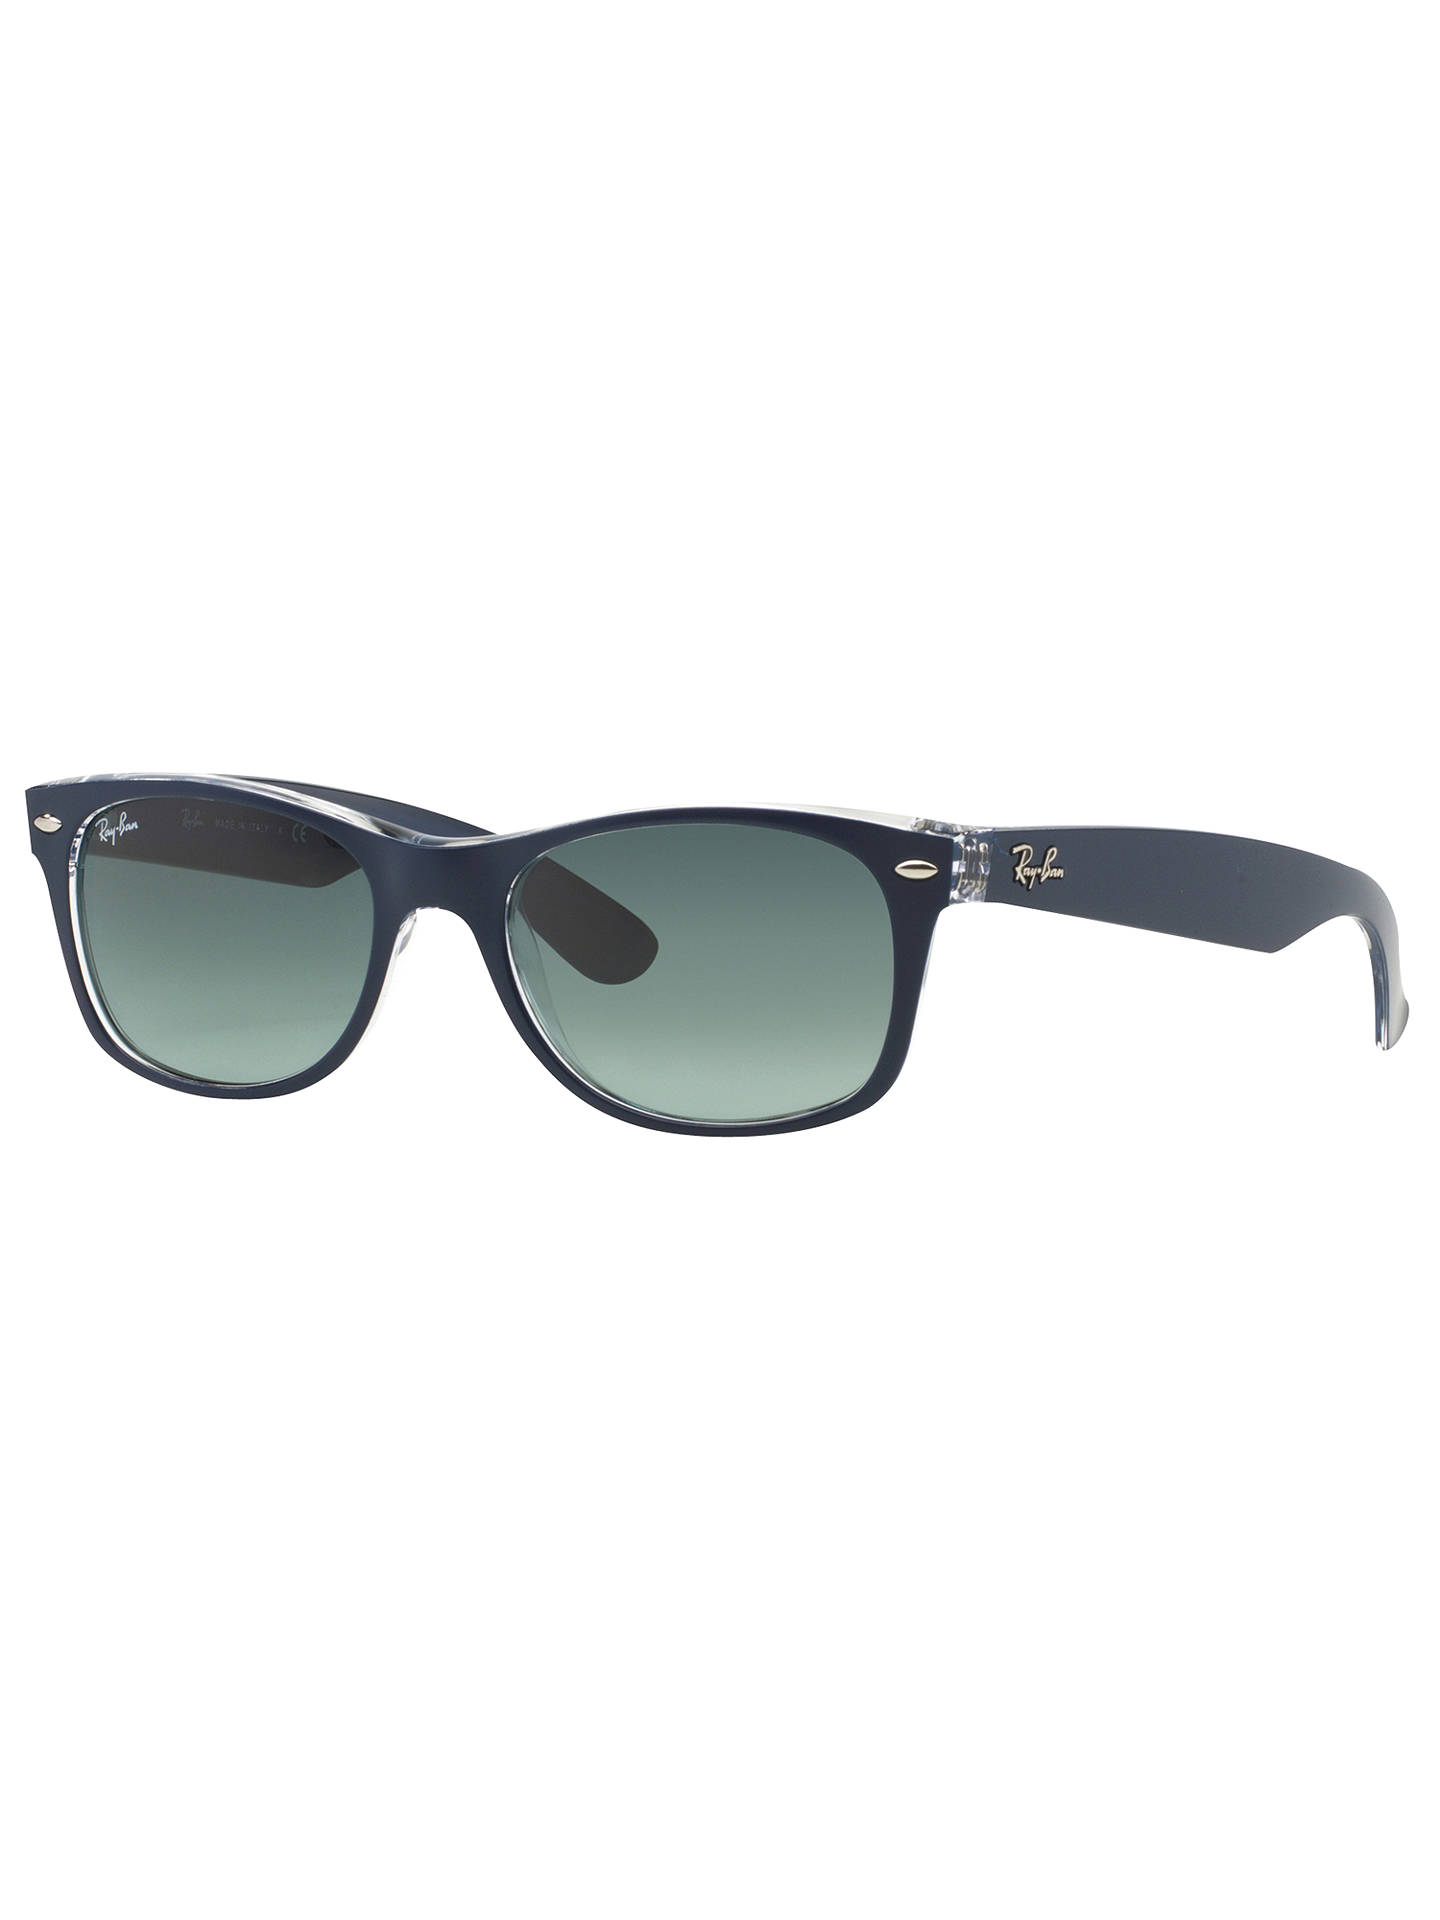 3e0aa00ff7 Ray-Ban RB2132 New Wayfarer Colour Mix Sunglasses at John Lewis ...